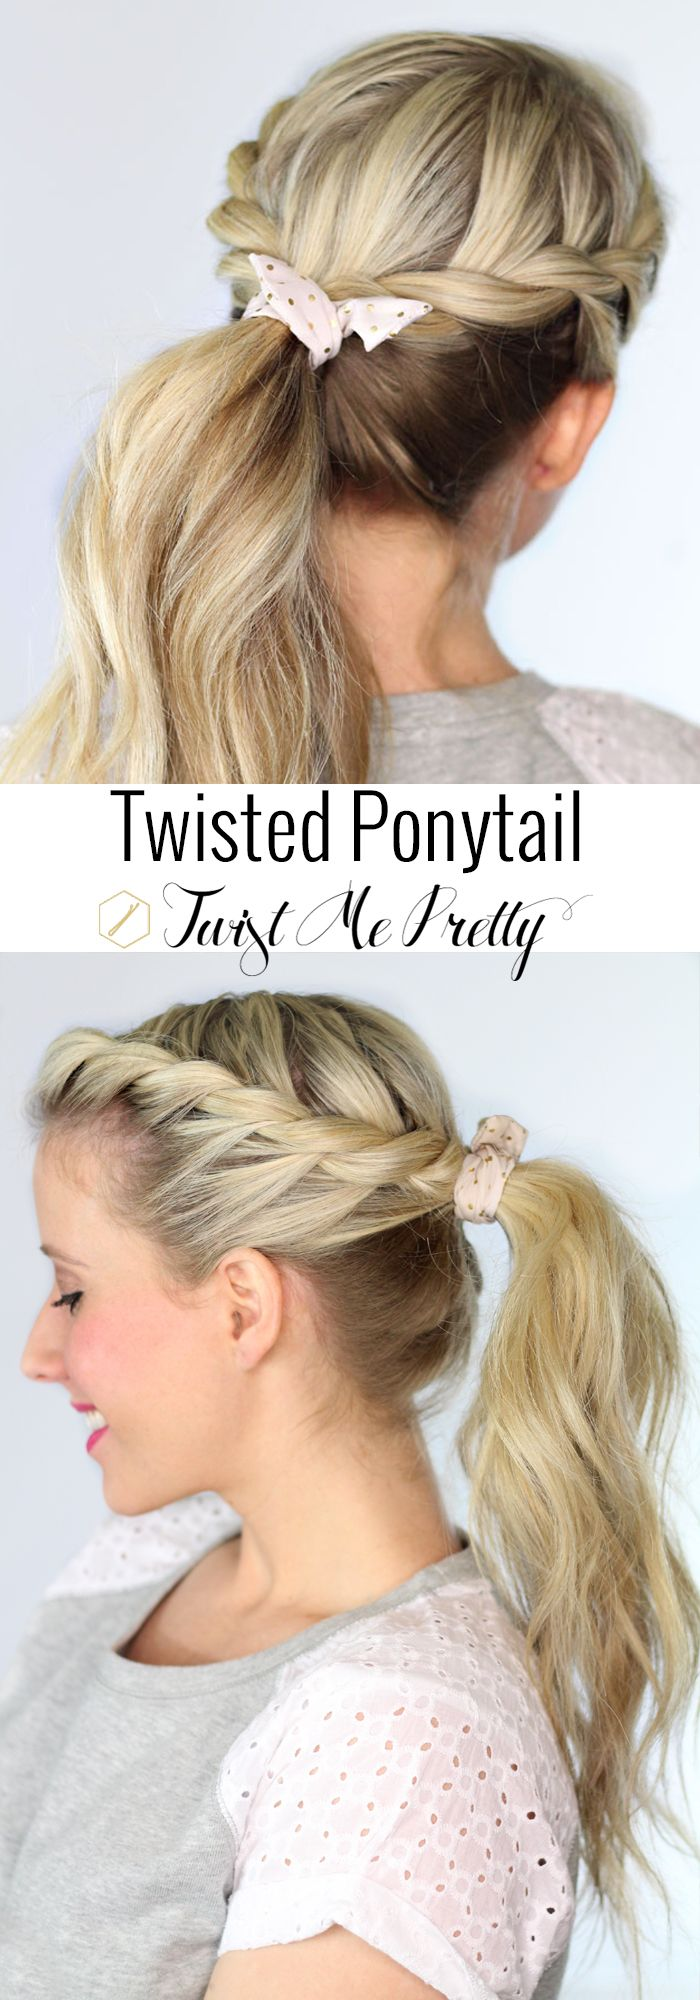 This hairstyle is so fresh and absolutely perfect for spring visit